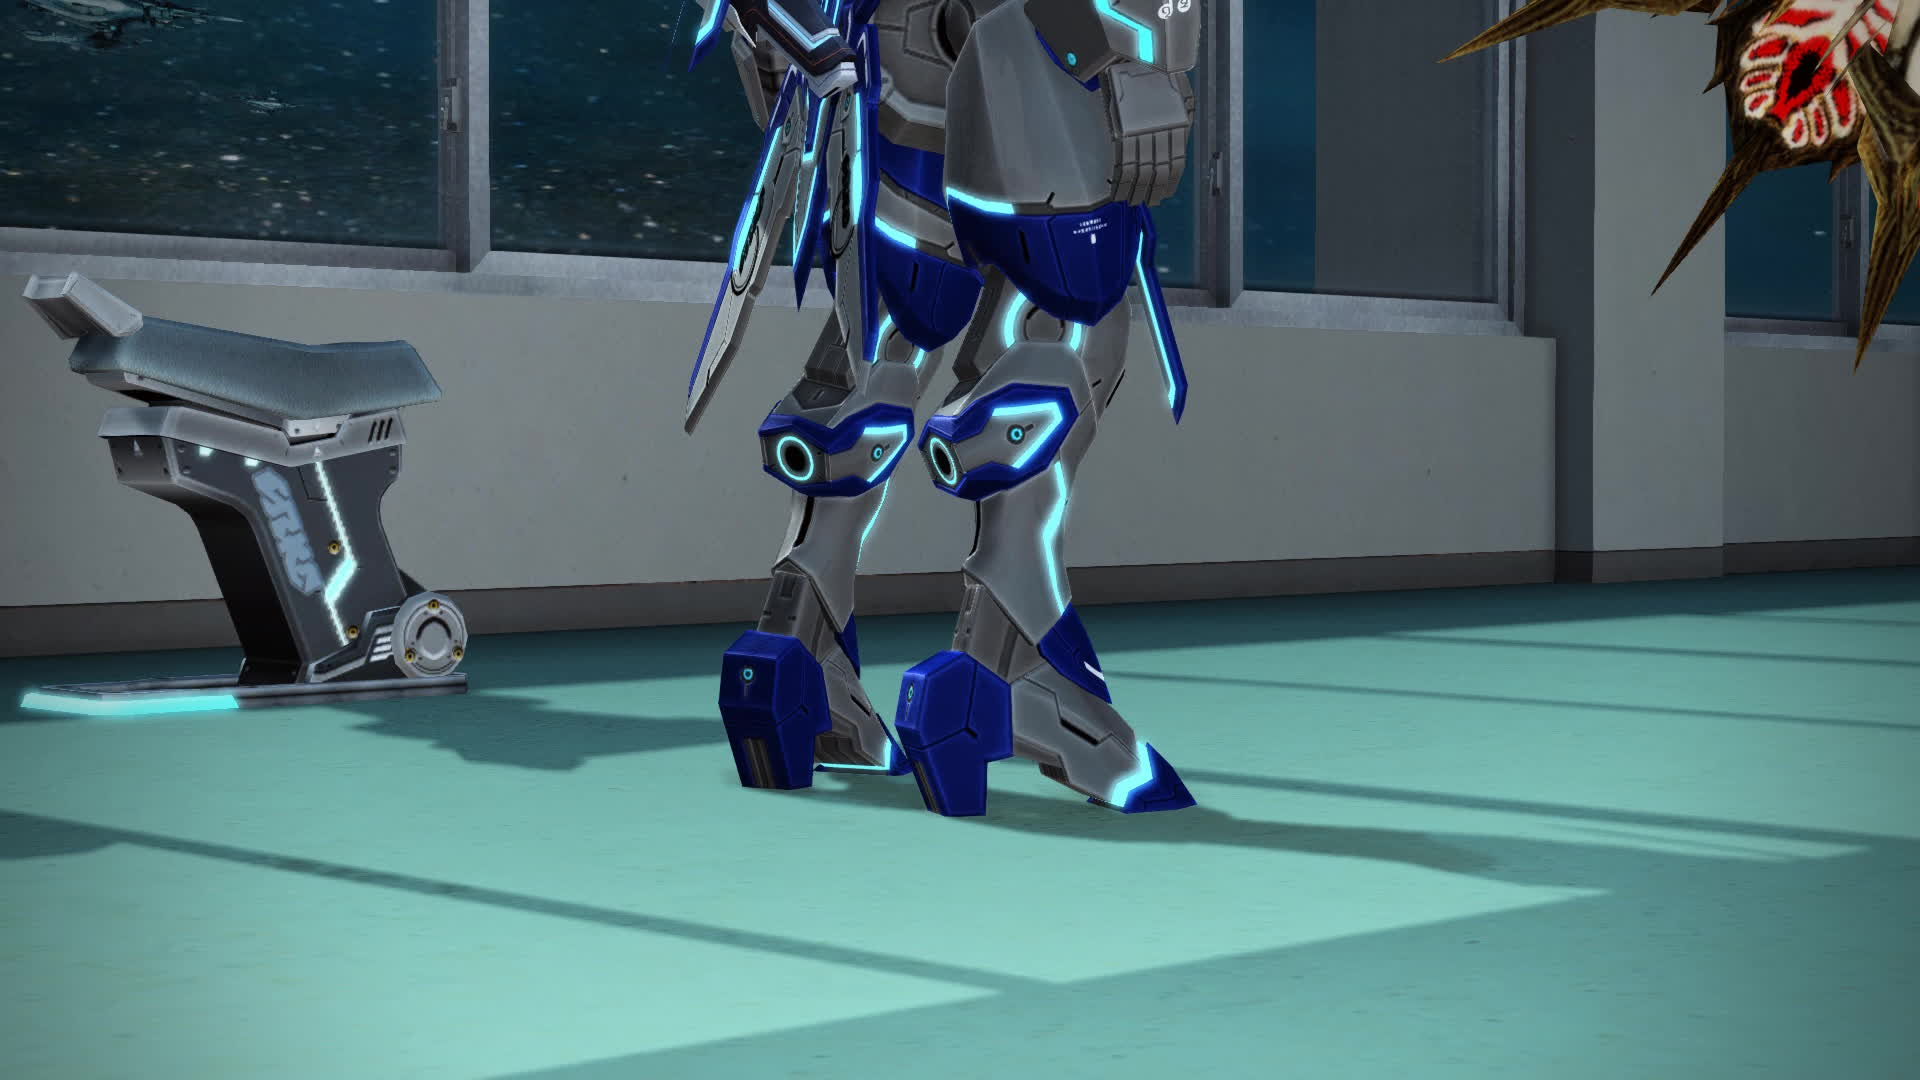 pso2, ro deo GIFs